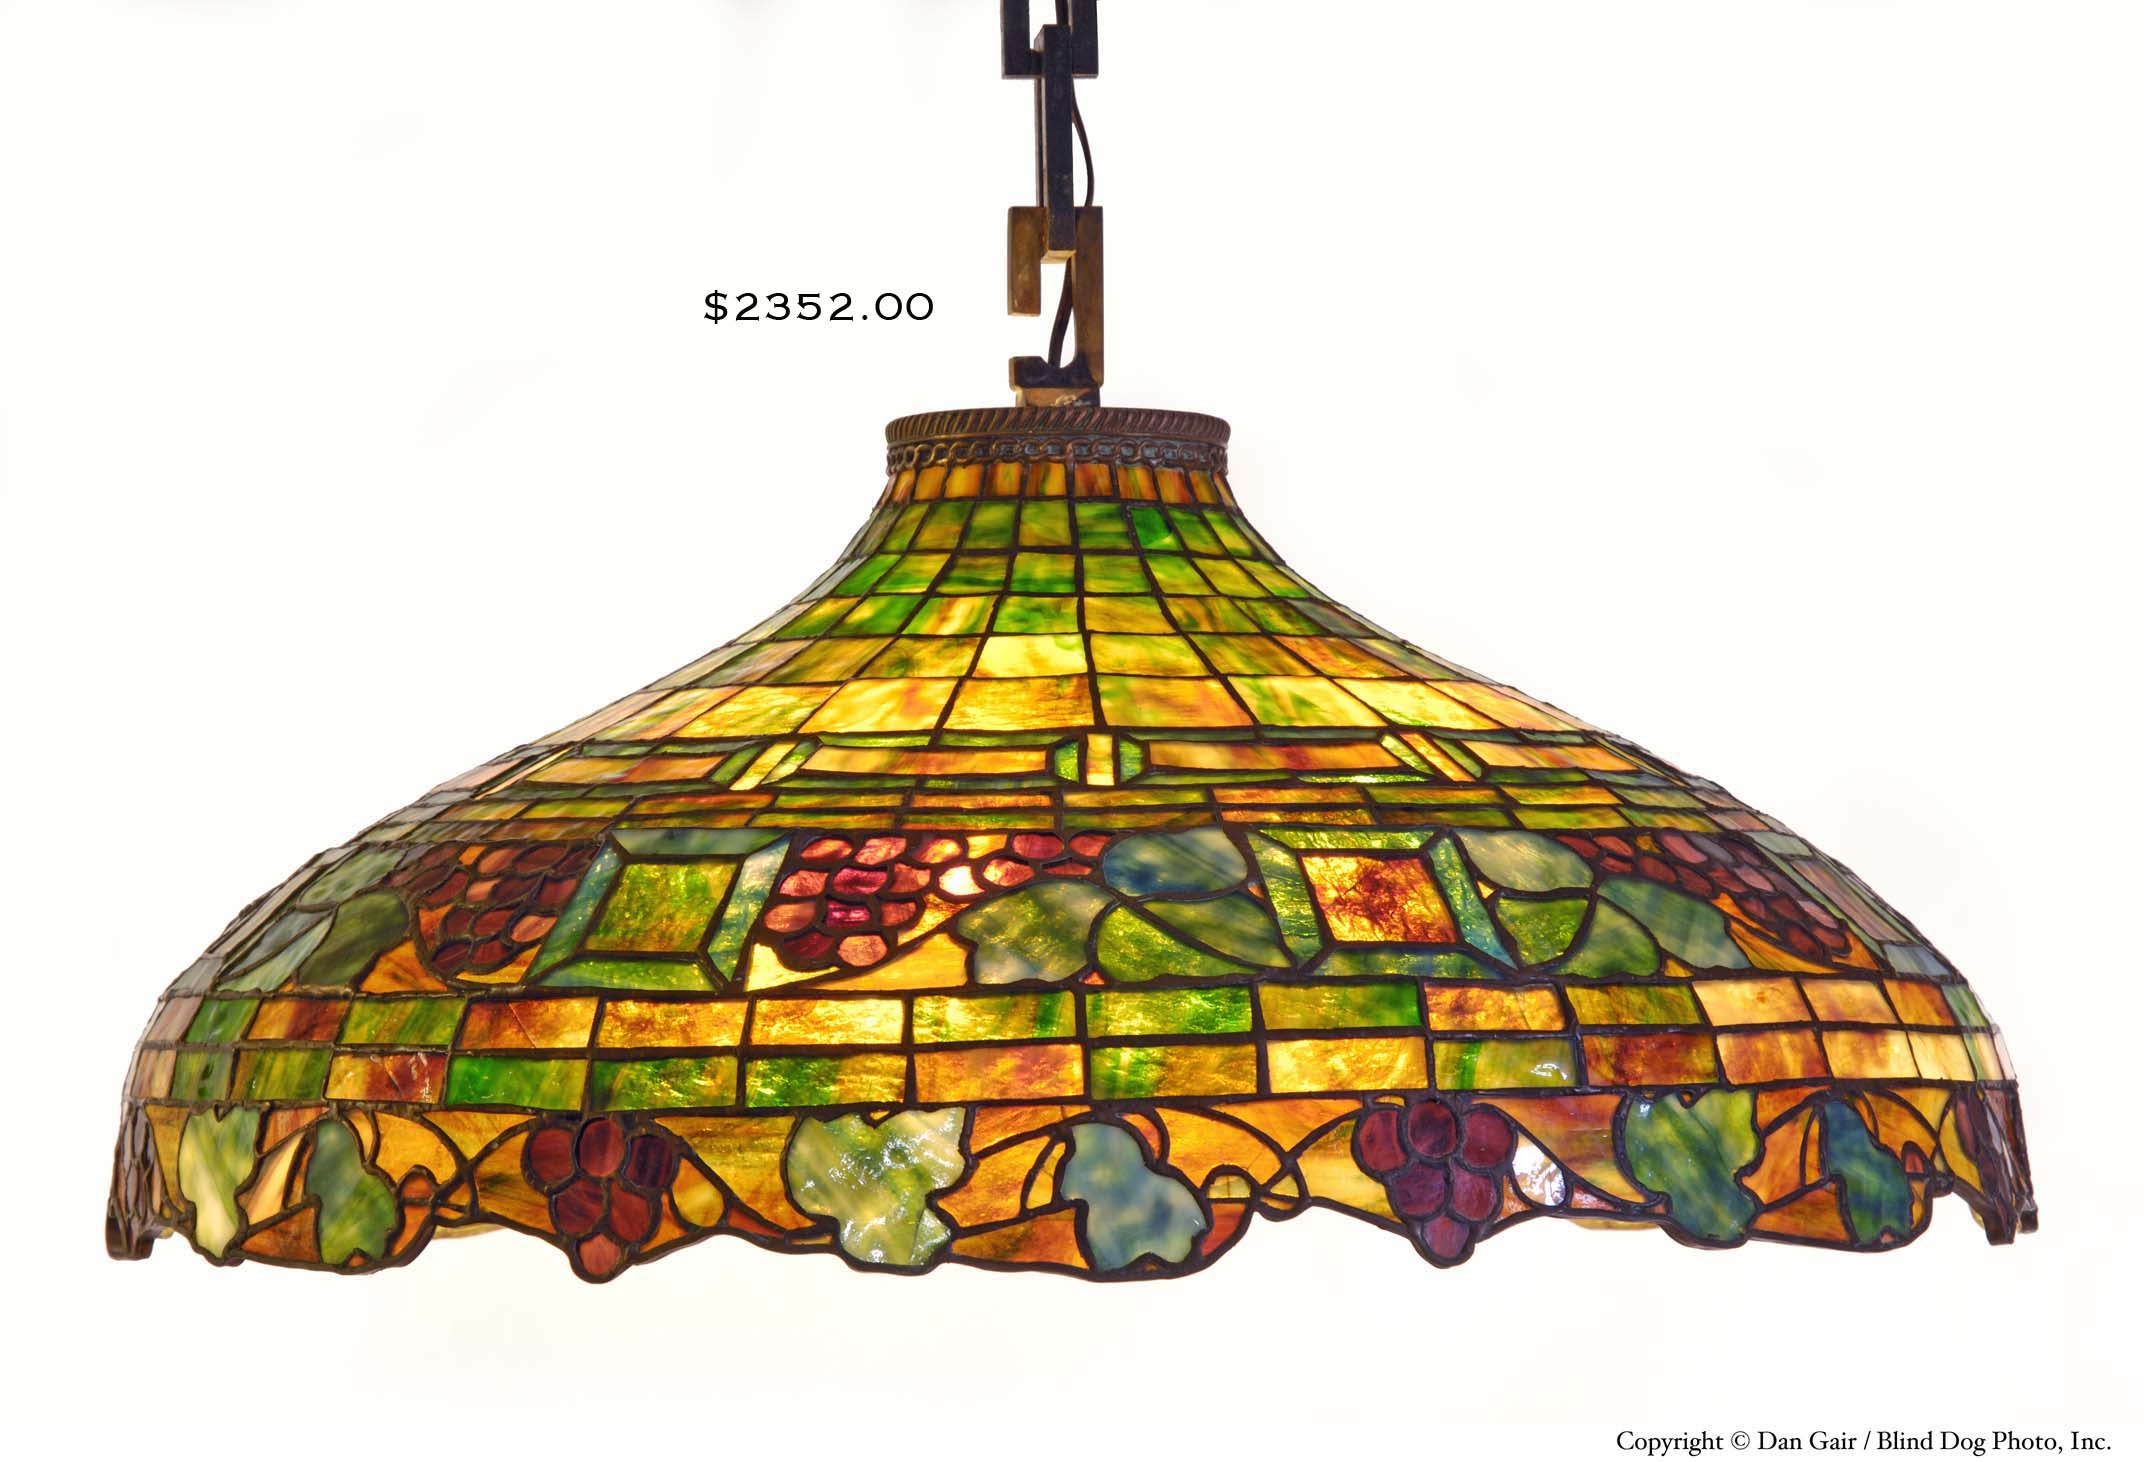 Portland Me Origin Stained Glass Hanging Fixture Hap Moore Antiques Auctions April 28 2007